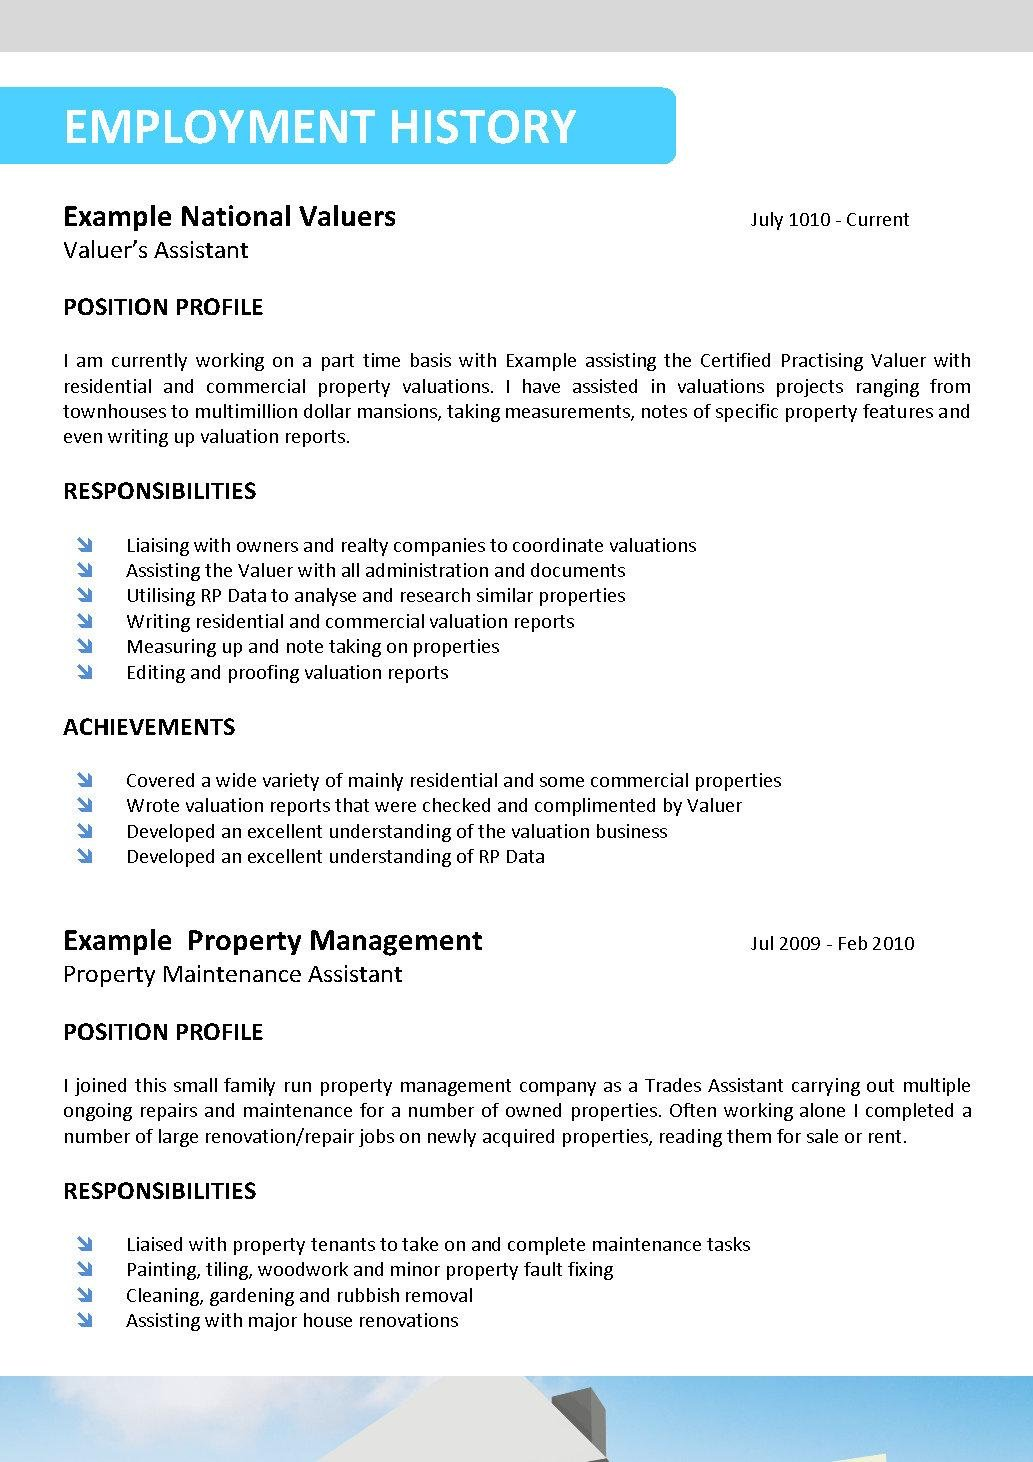 Cover Letter Realtor Resume Sample With Professional Profile As